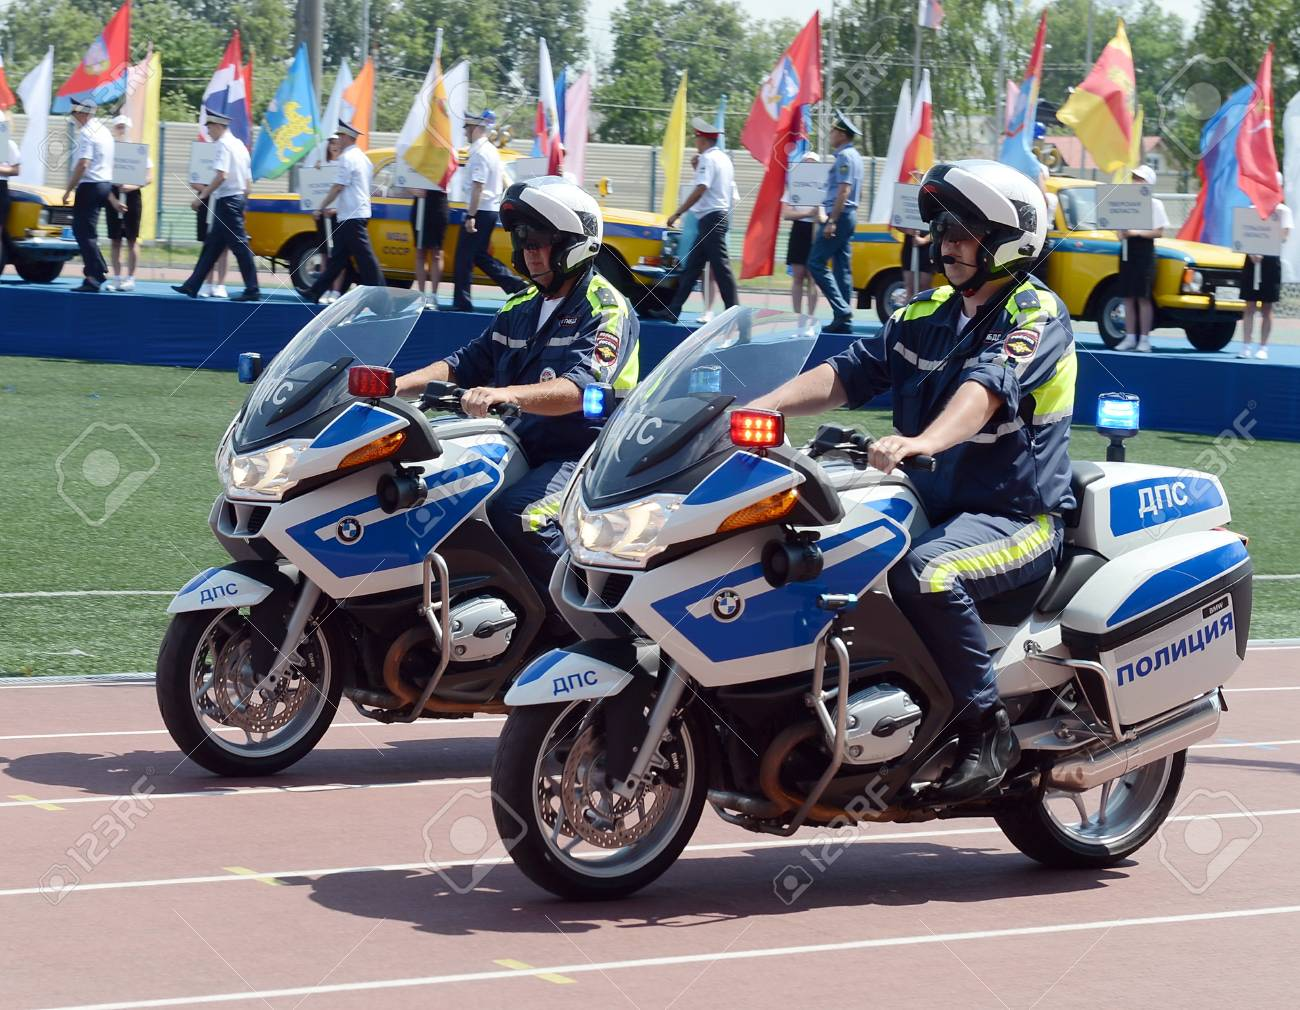 hight resolution of inspectors of traffic police on bmw motorcycles stock photo 75291854